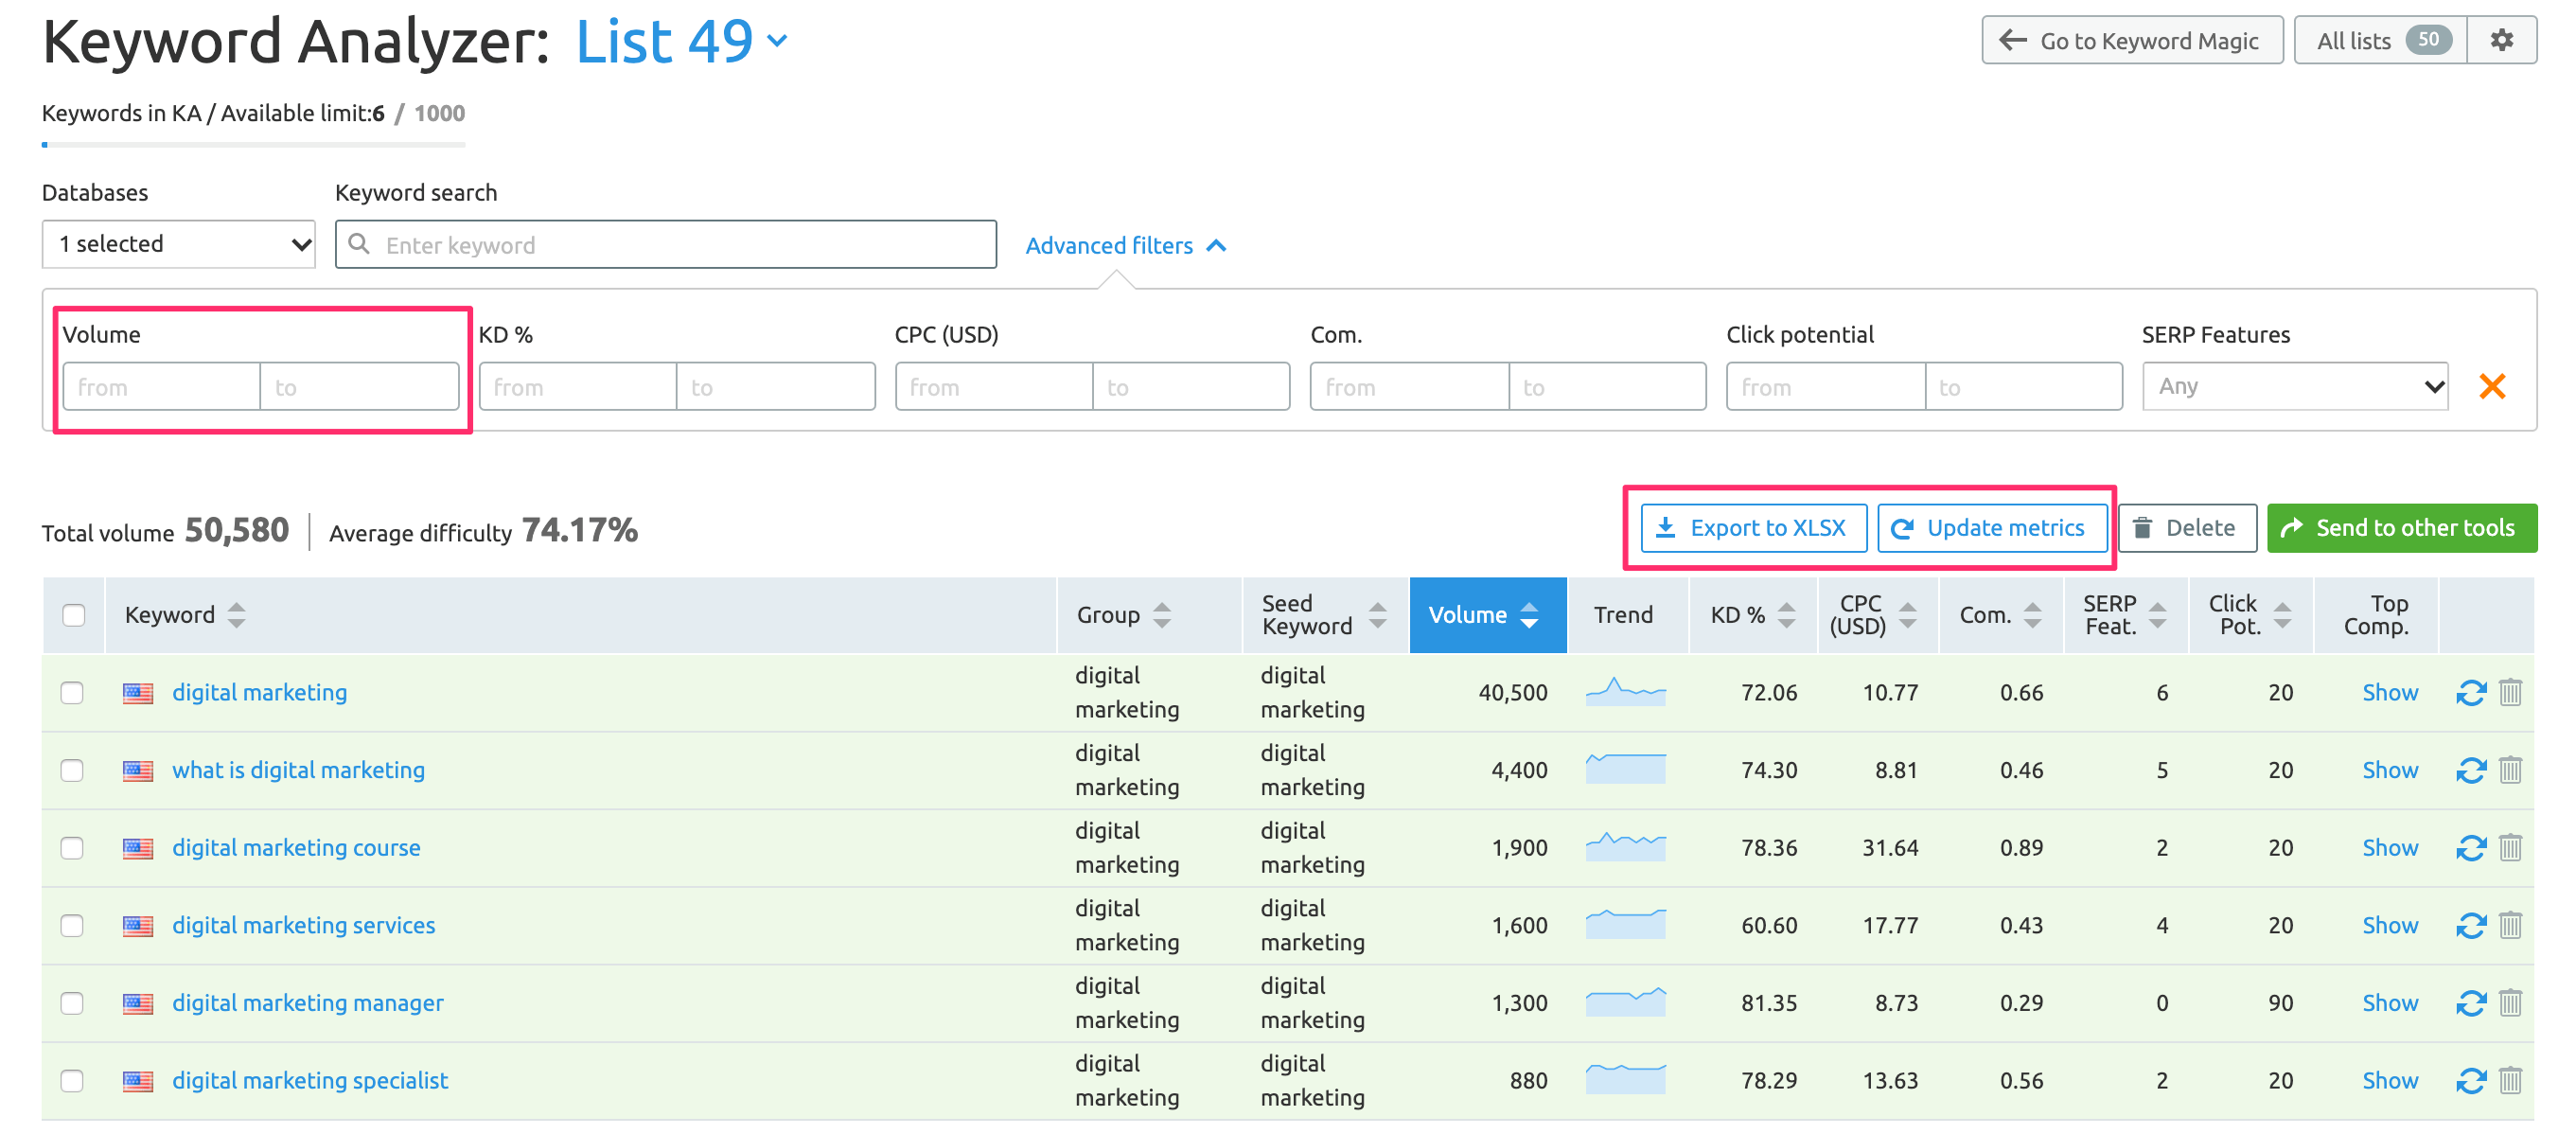 Get more data for selected keywords using the Keyword Analyzer